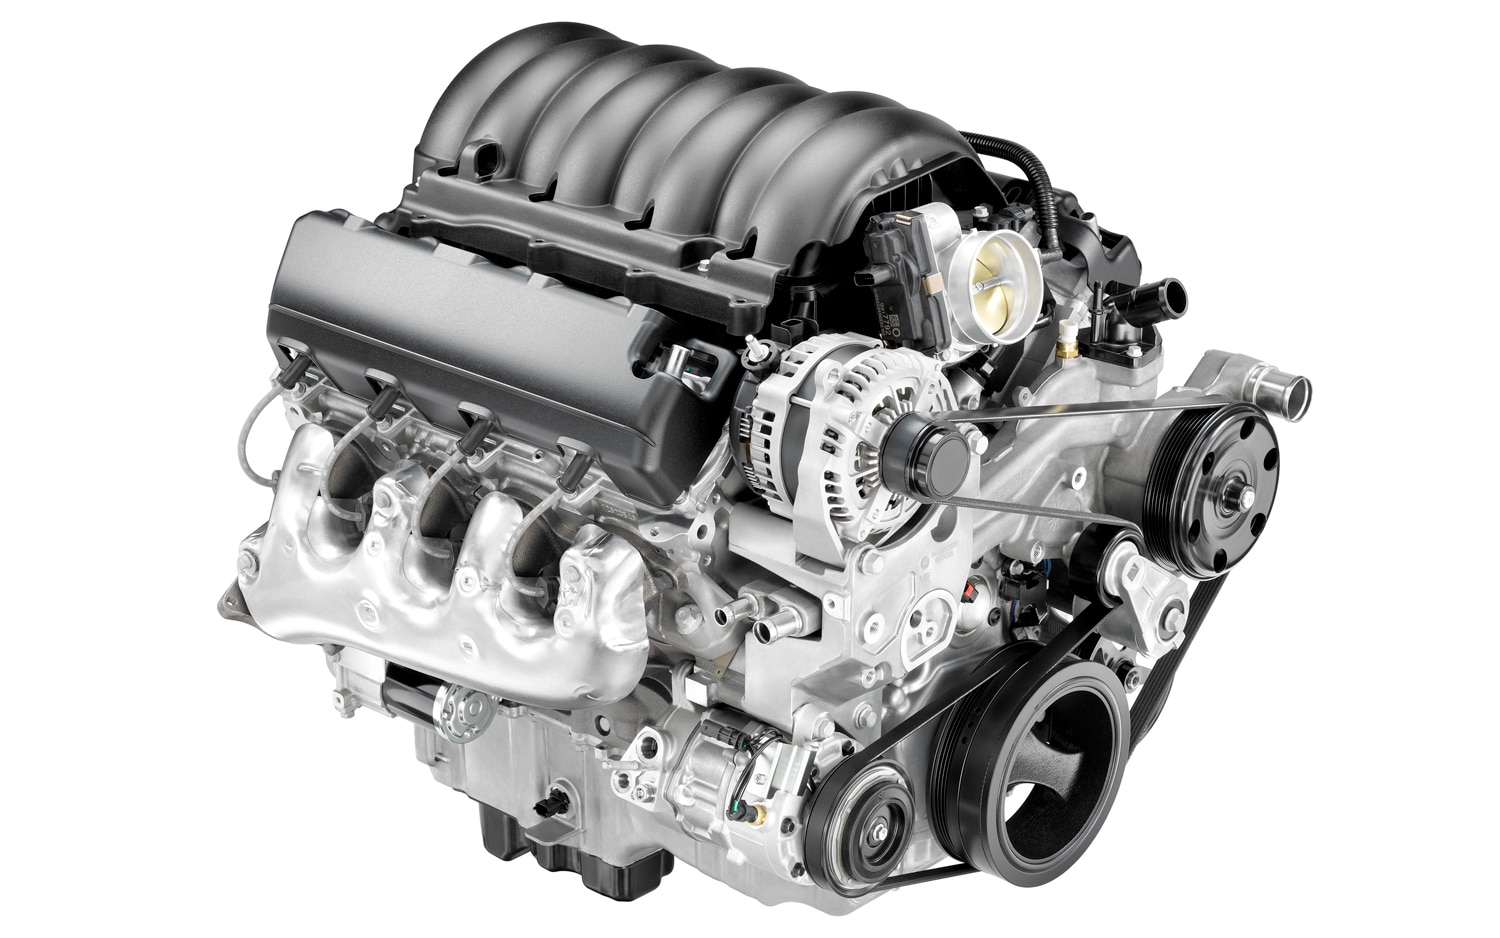 2014 Chevrolet Silverado V8 Engine